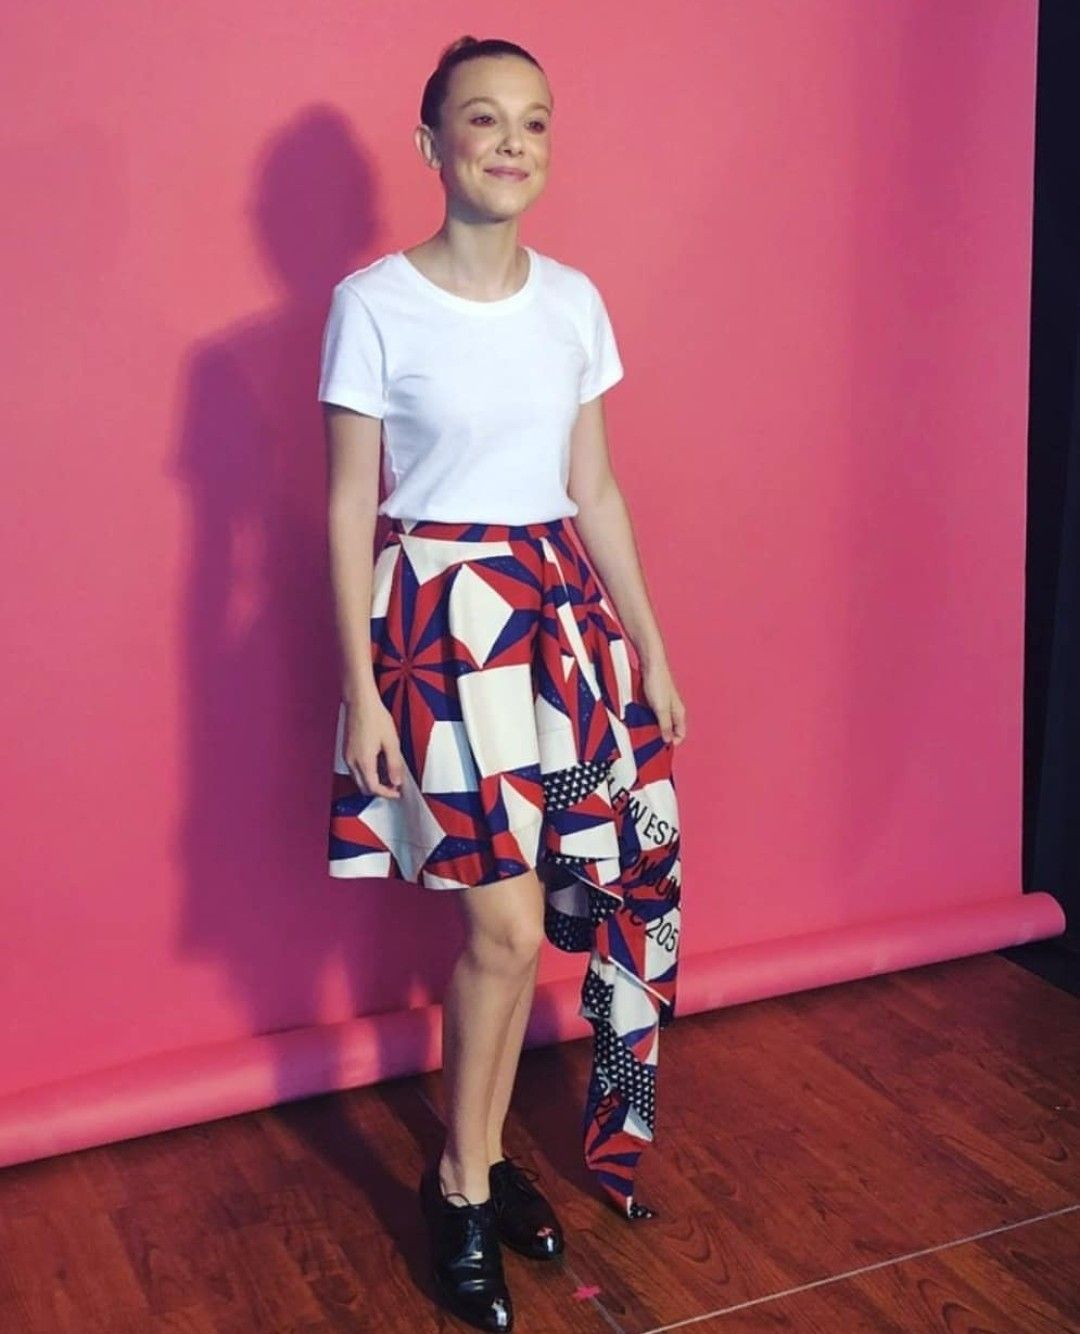 2fab97068c99 Millie Bobby Brown at San Diego Comic Con (7 21 18)